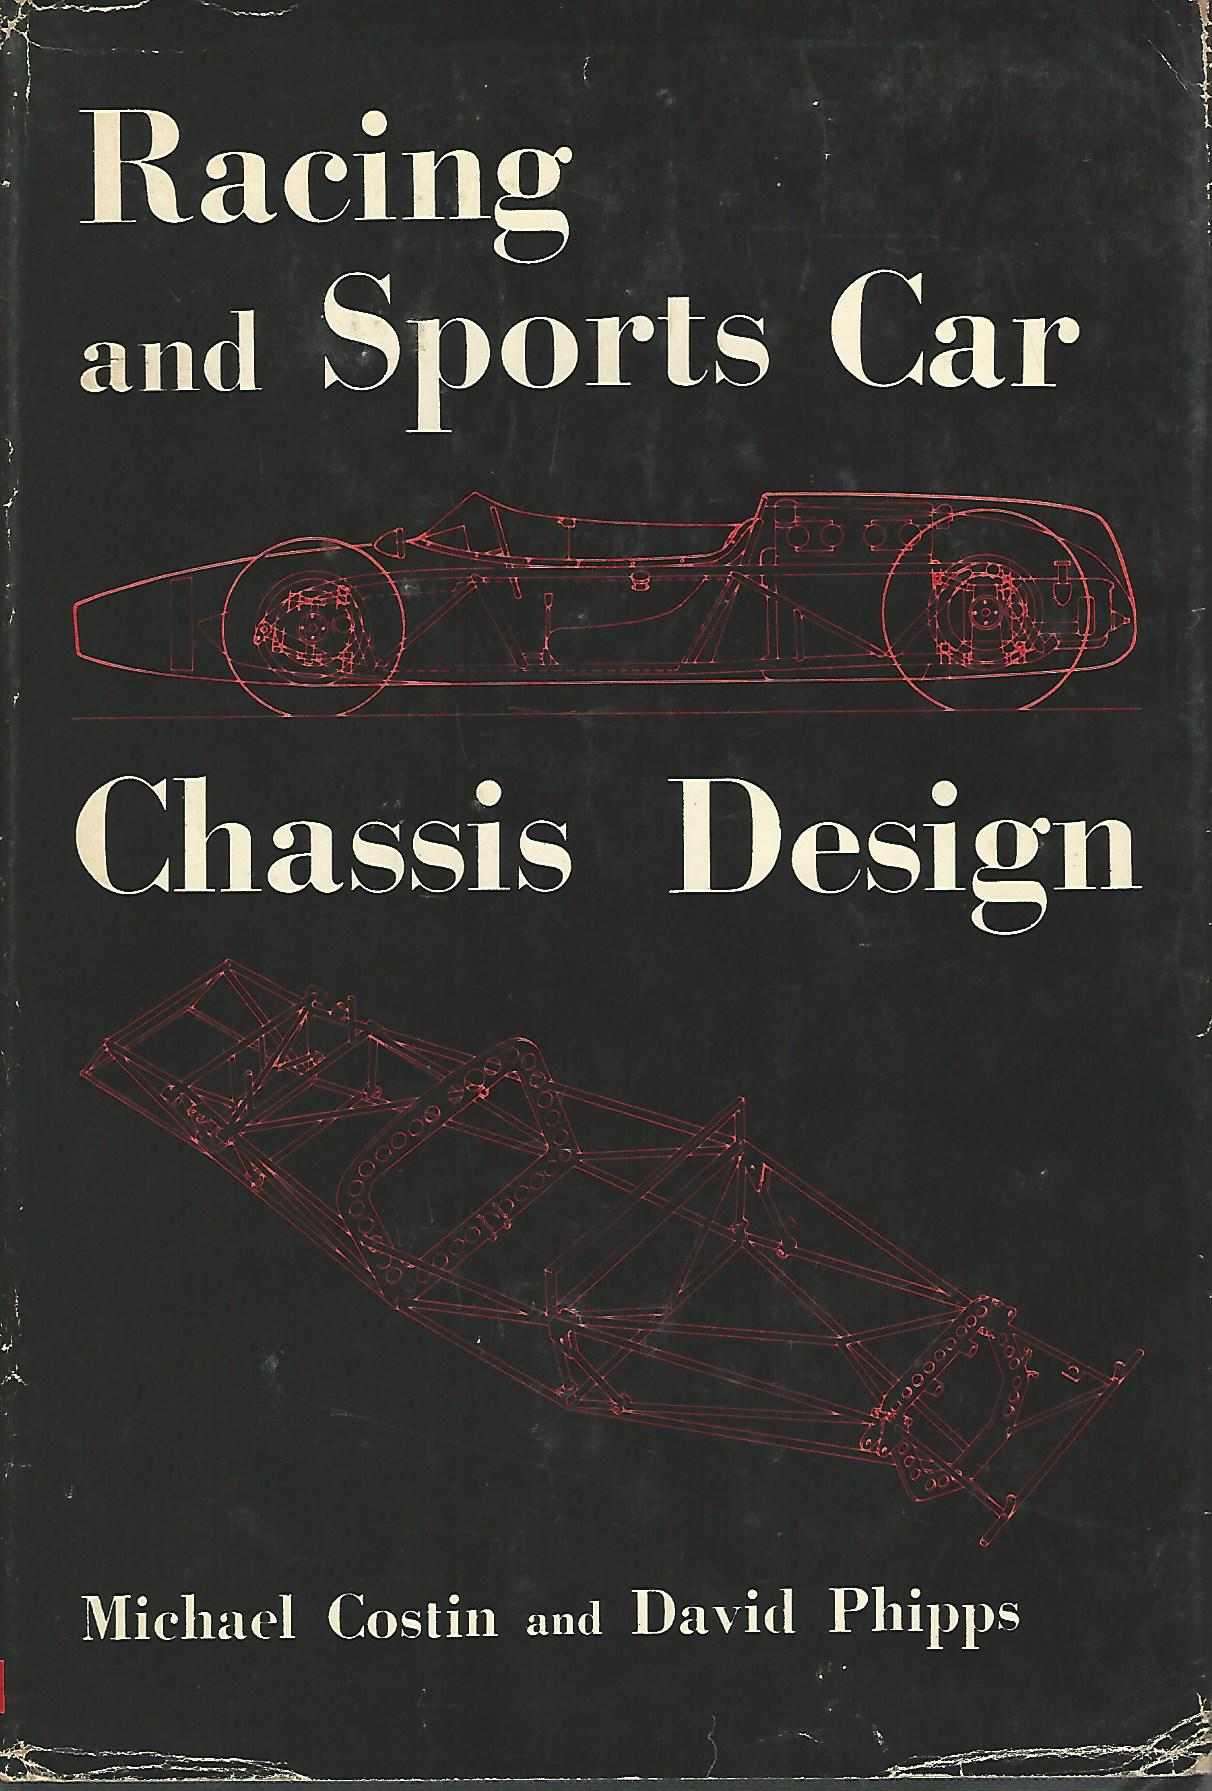 Image for Racing and Sports Car Chassis Design.